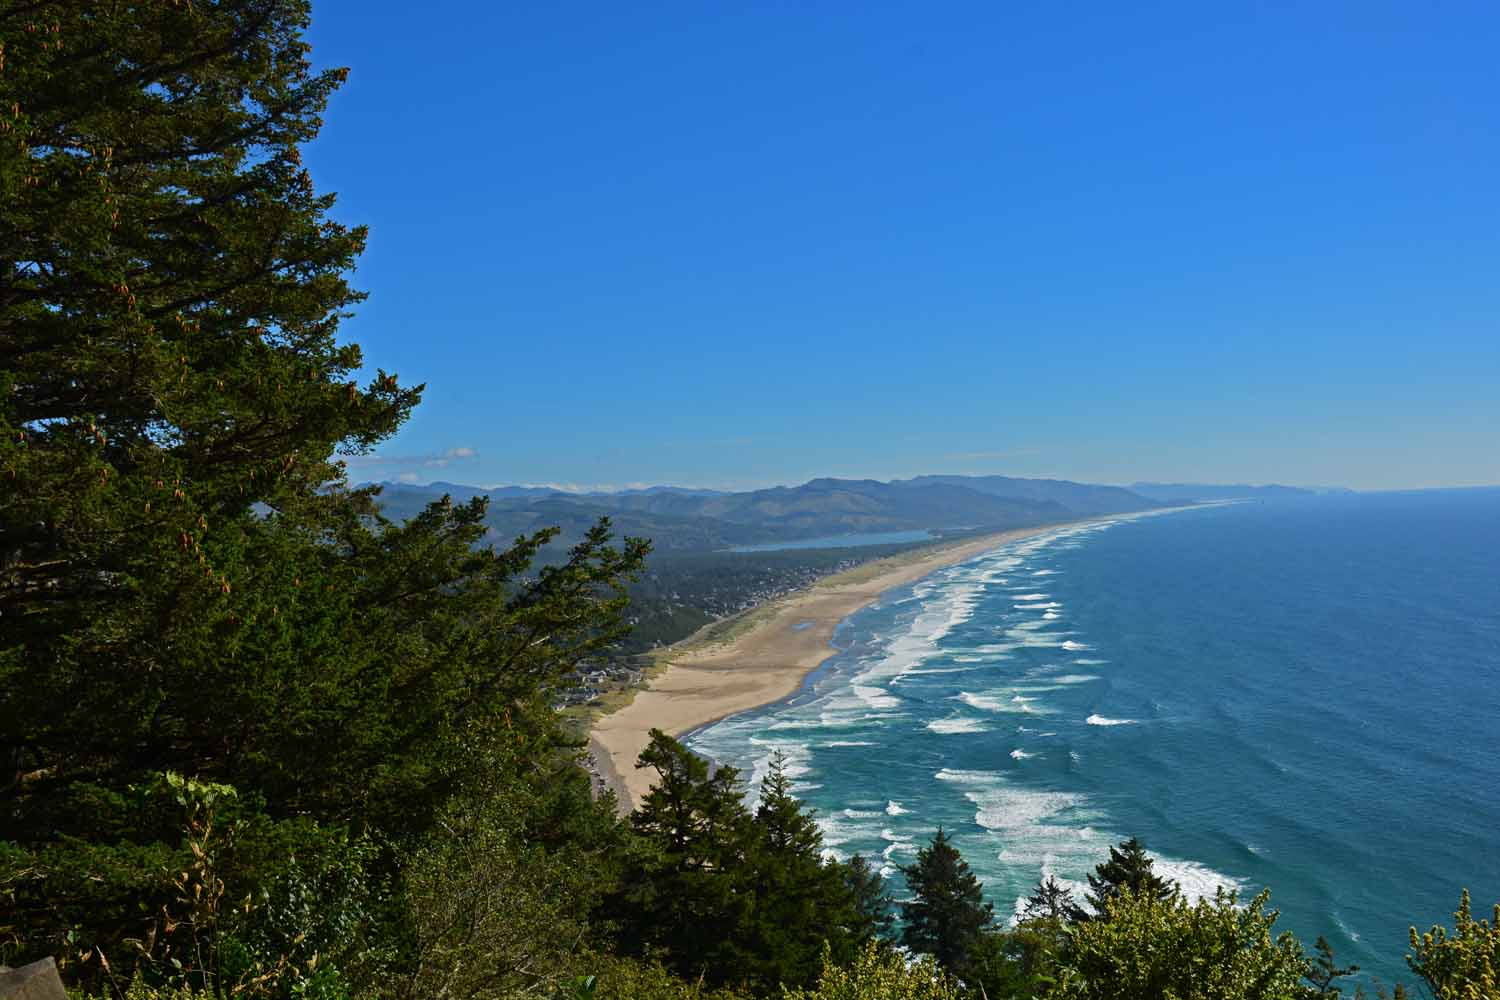 Breath taking views along the Oregon Coast.  What do you think!